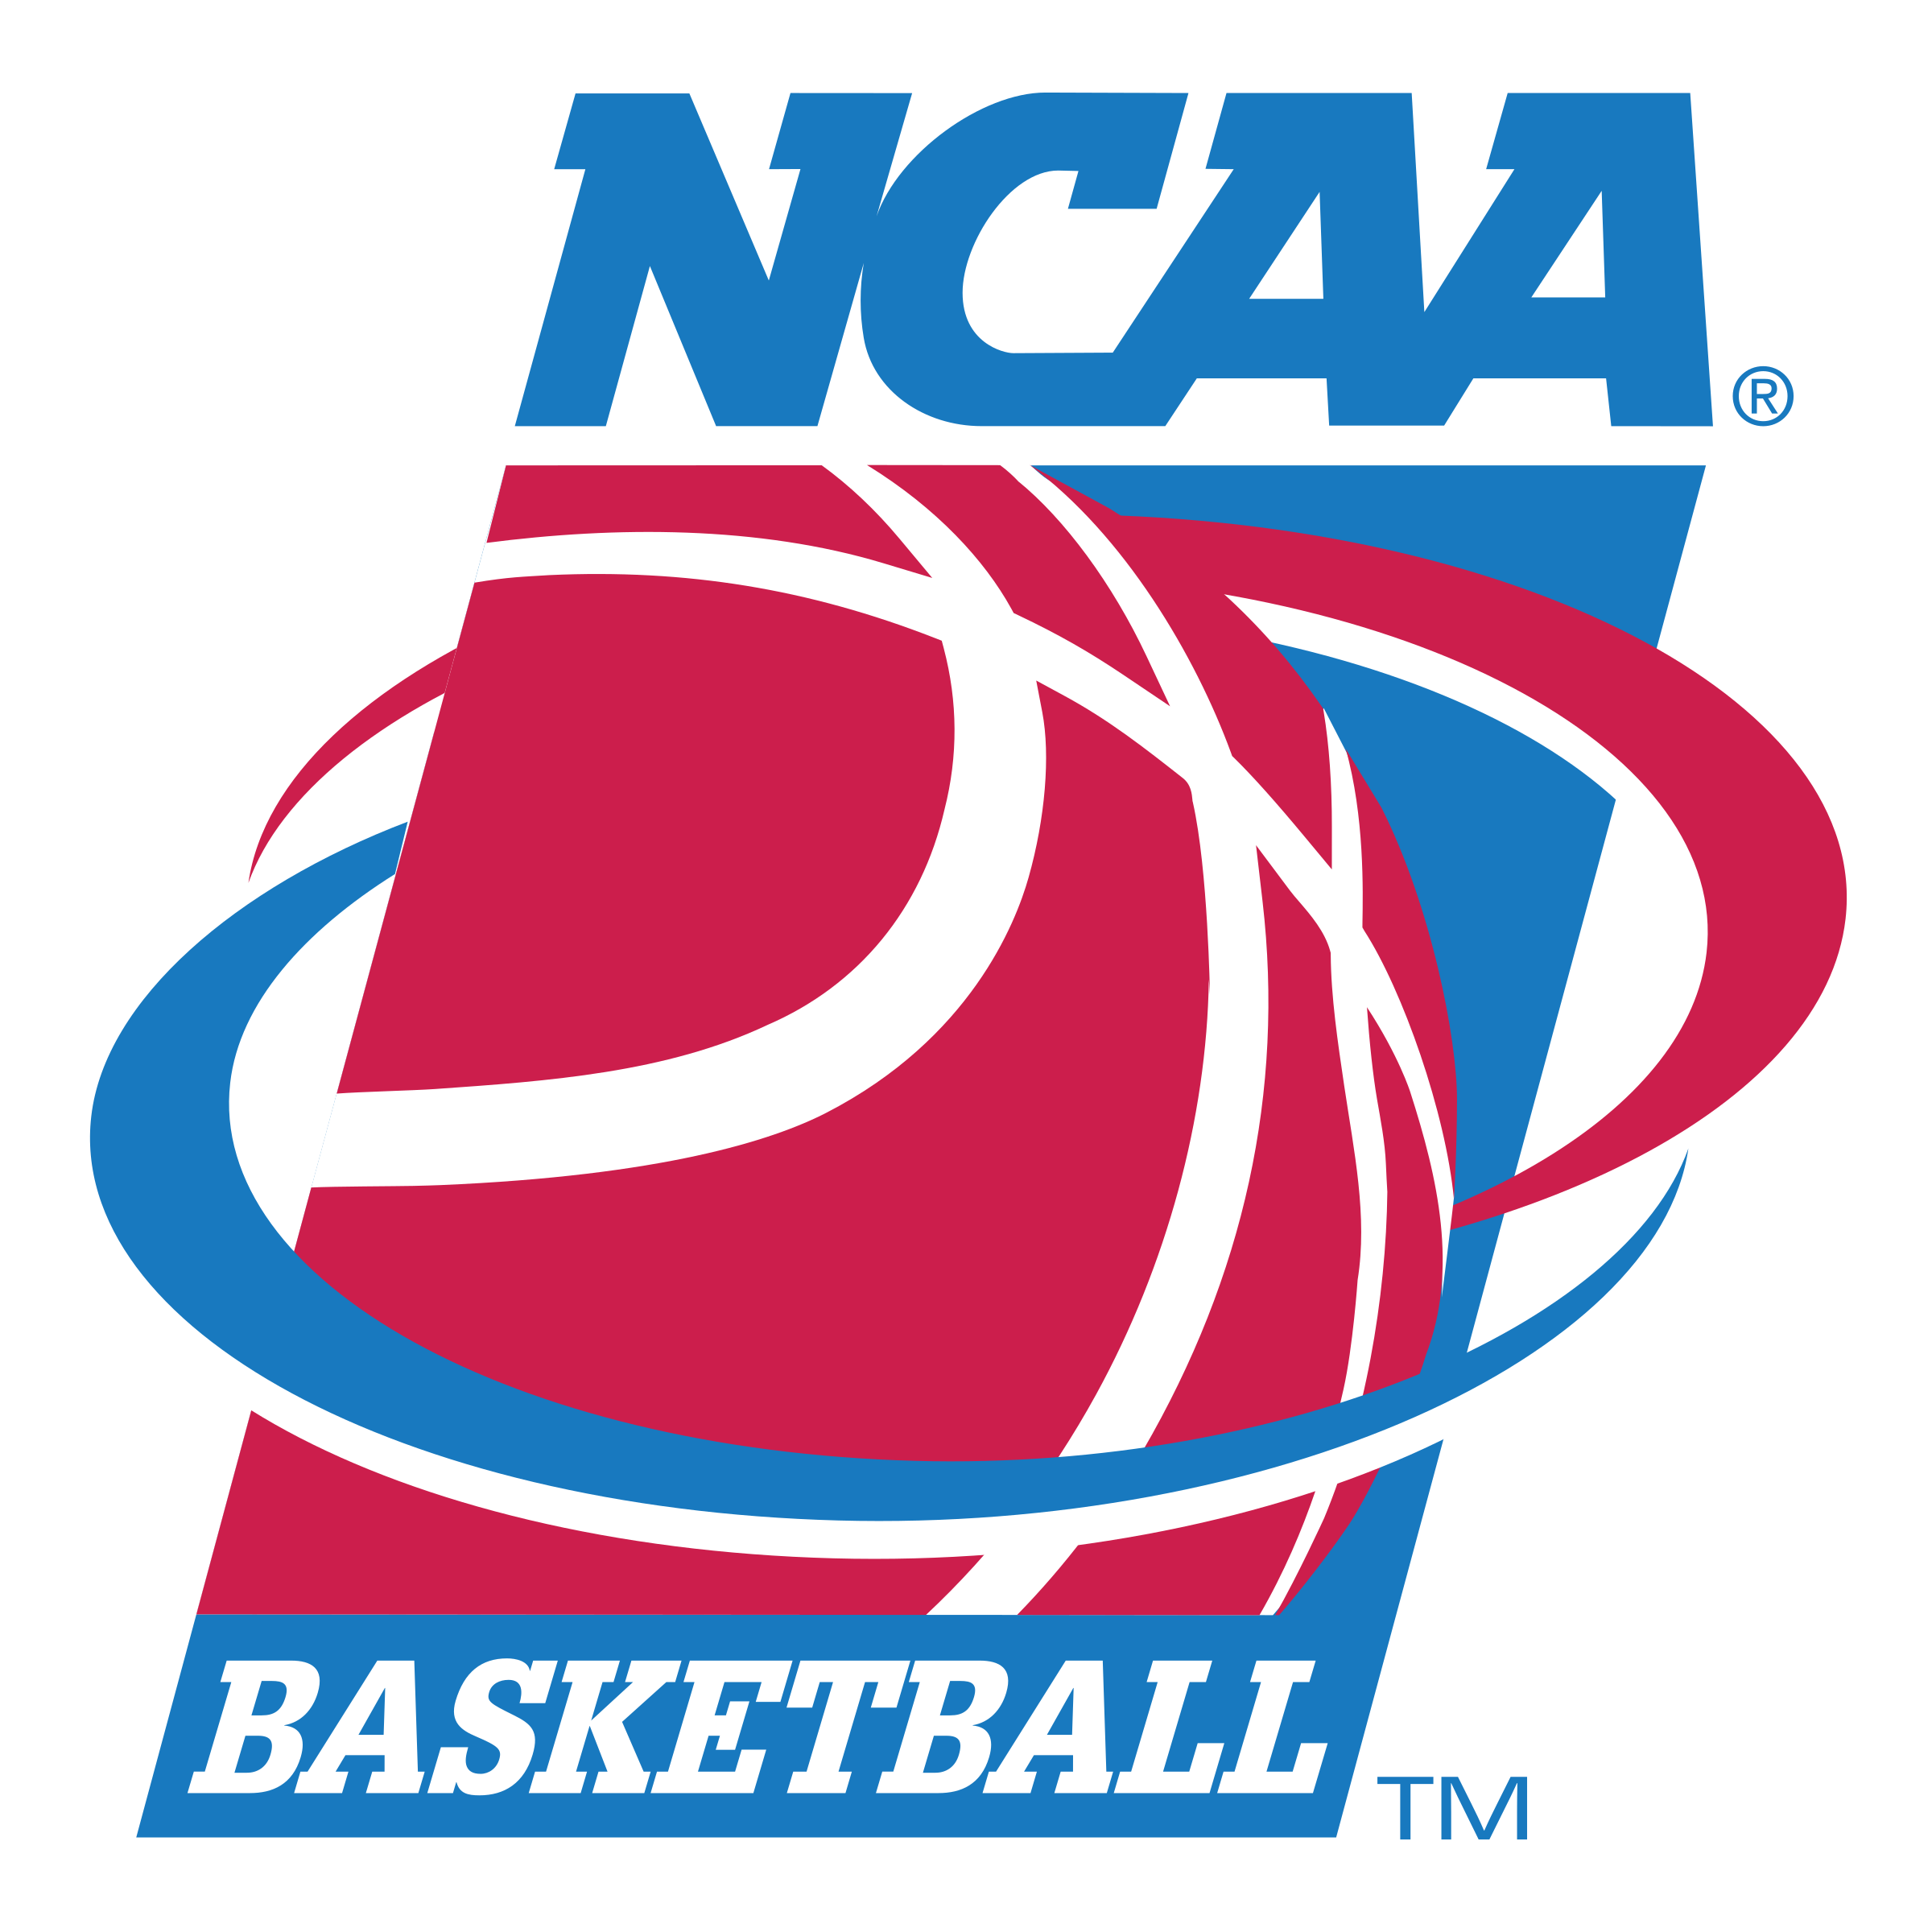 NCAA Basketball Logo PNG Transparent & SVG Vector.